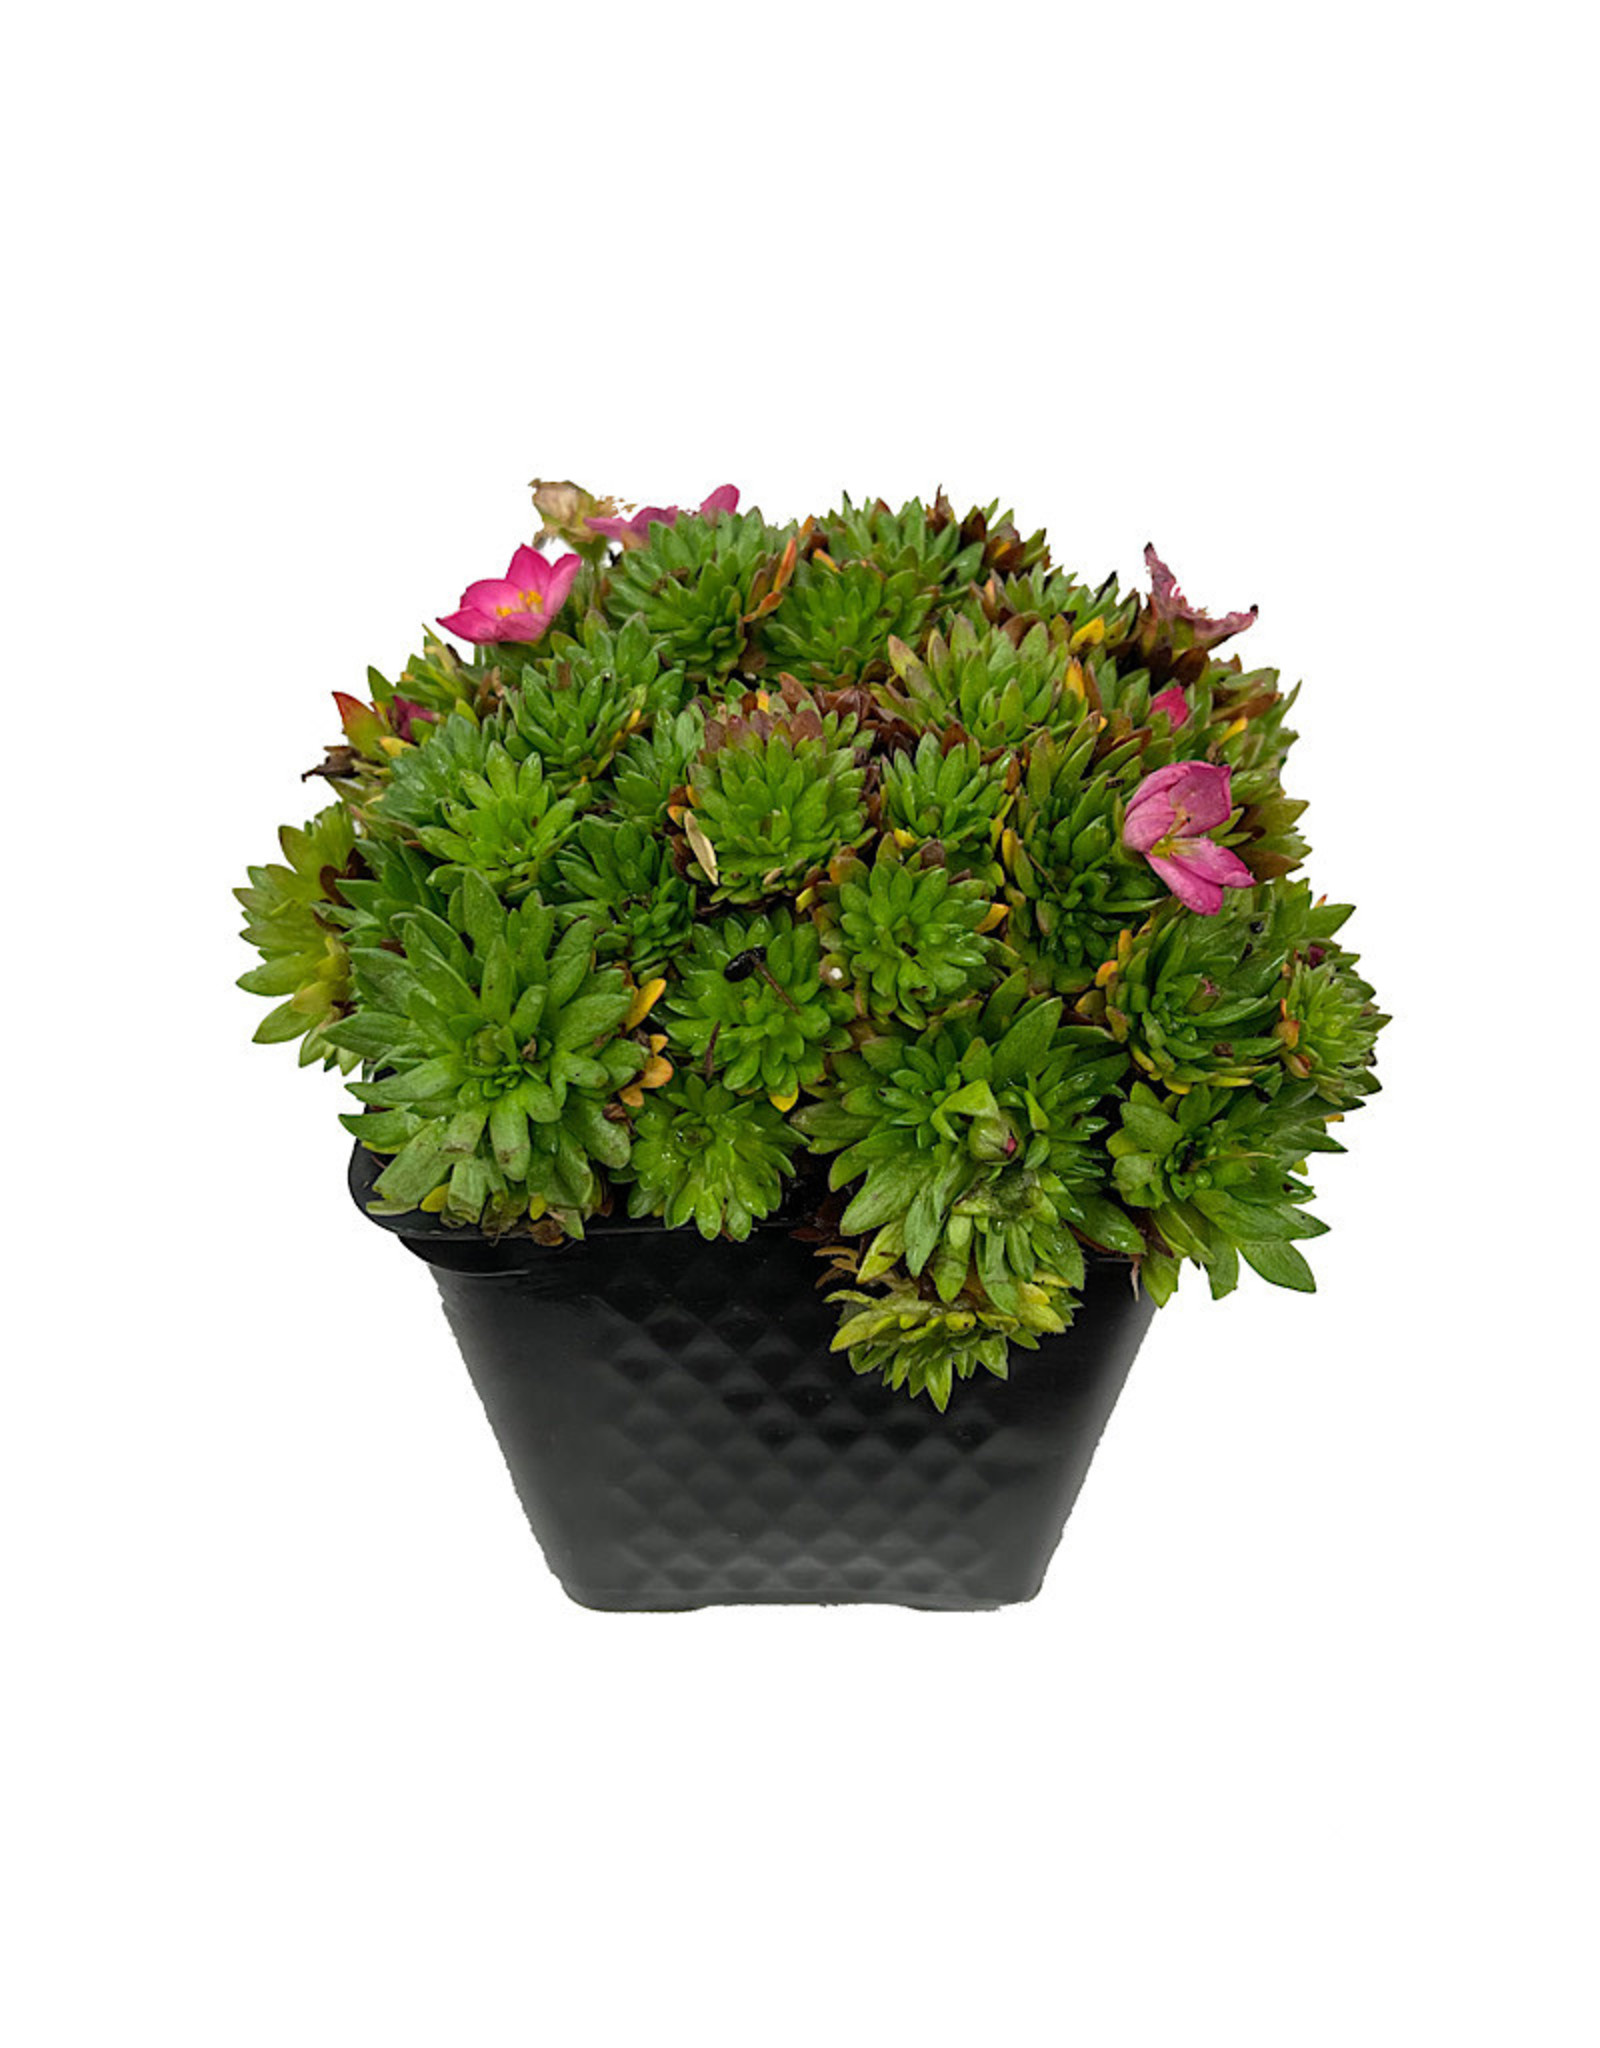 Saxifraga 'Alpino Early Magic Salmon' 4 Inch